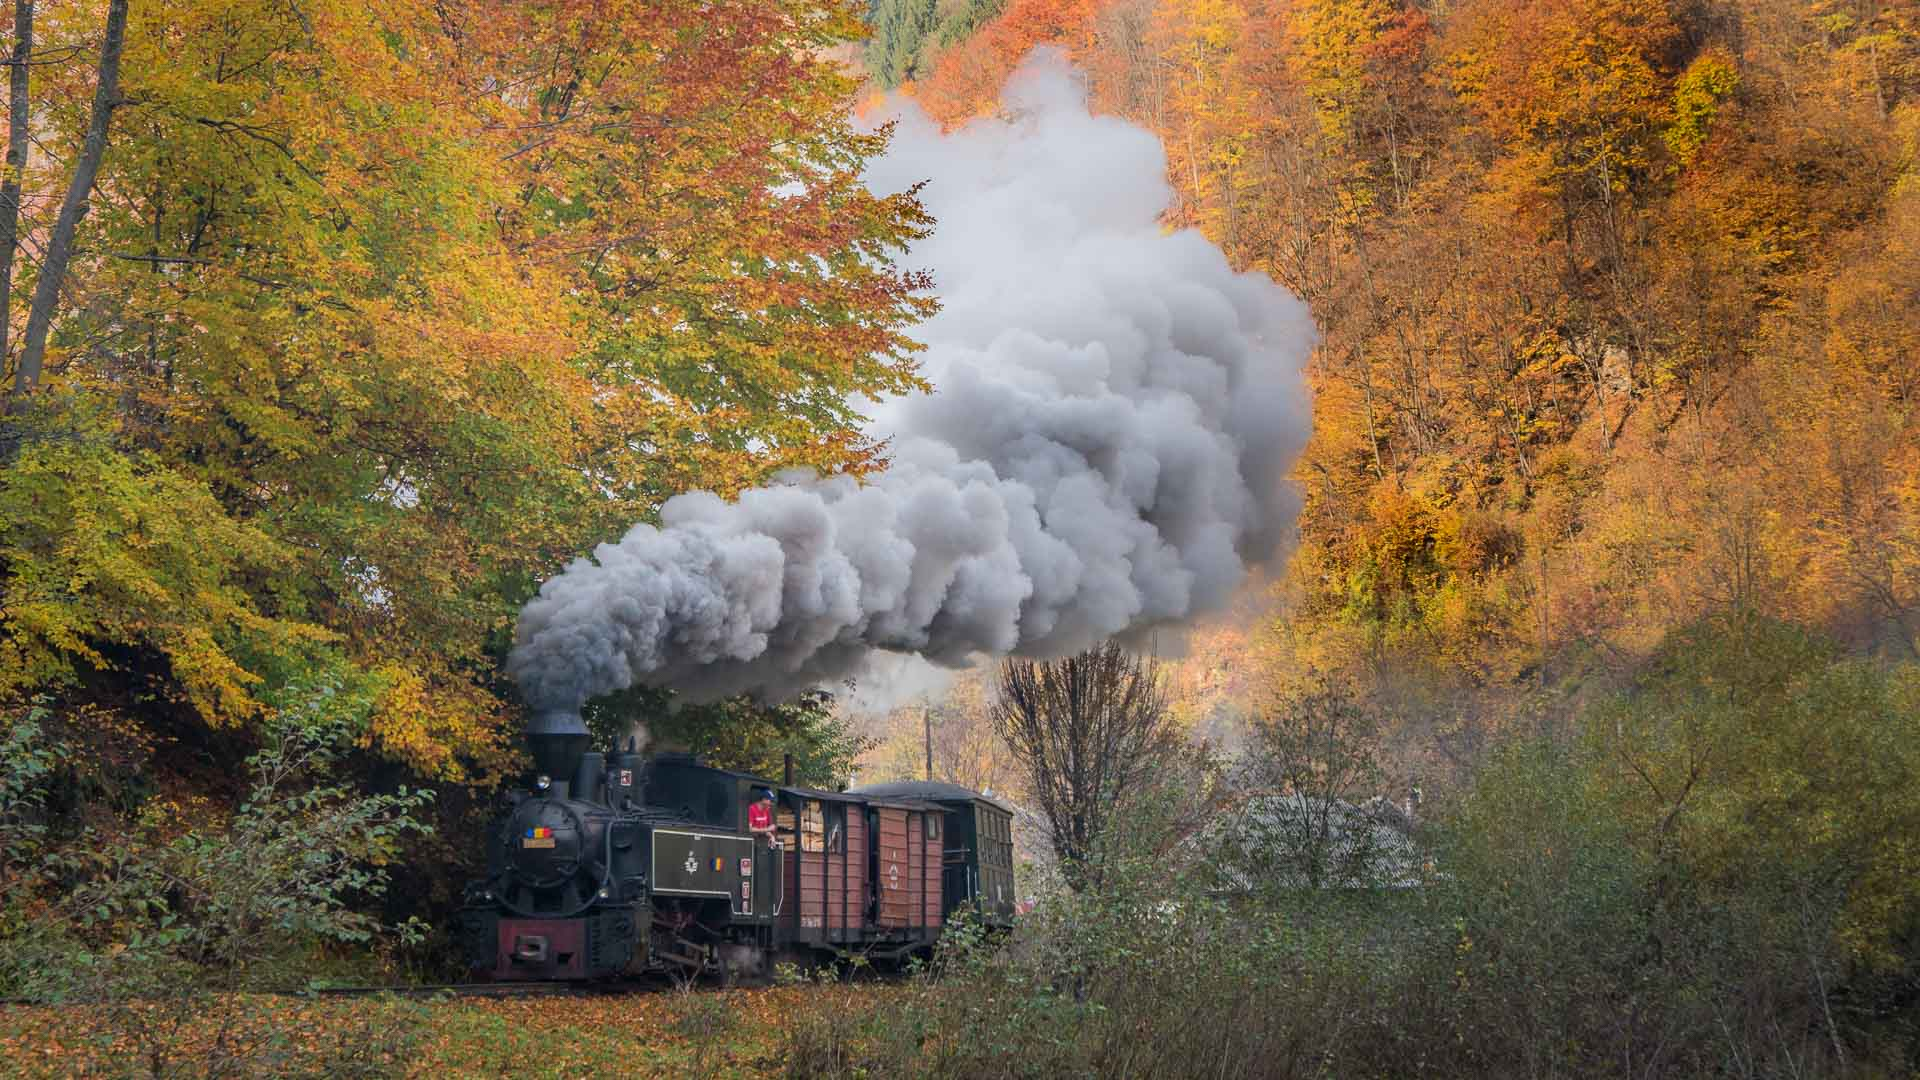 Mocanita Steam Train in Maramures